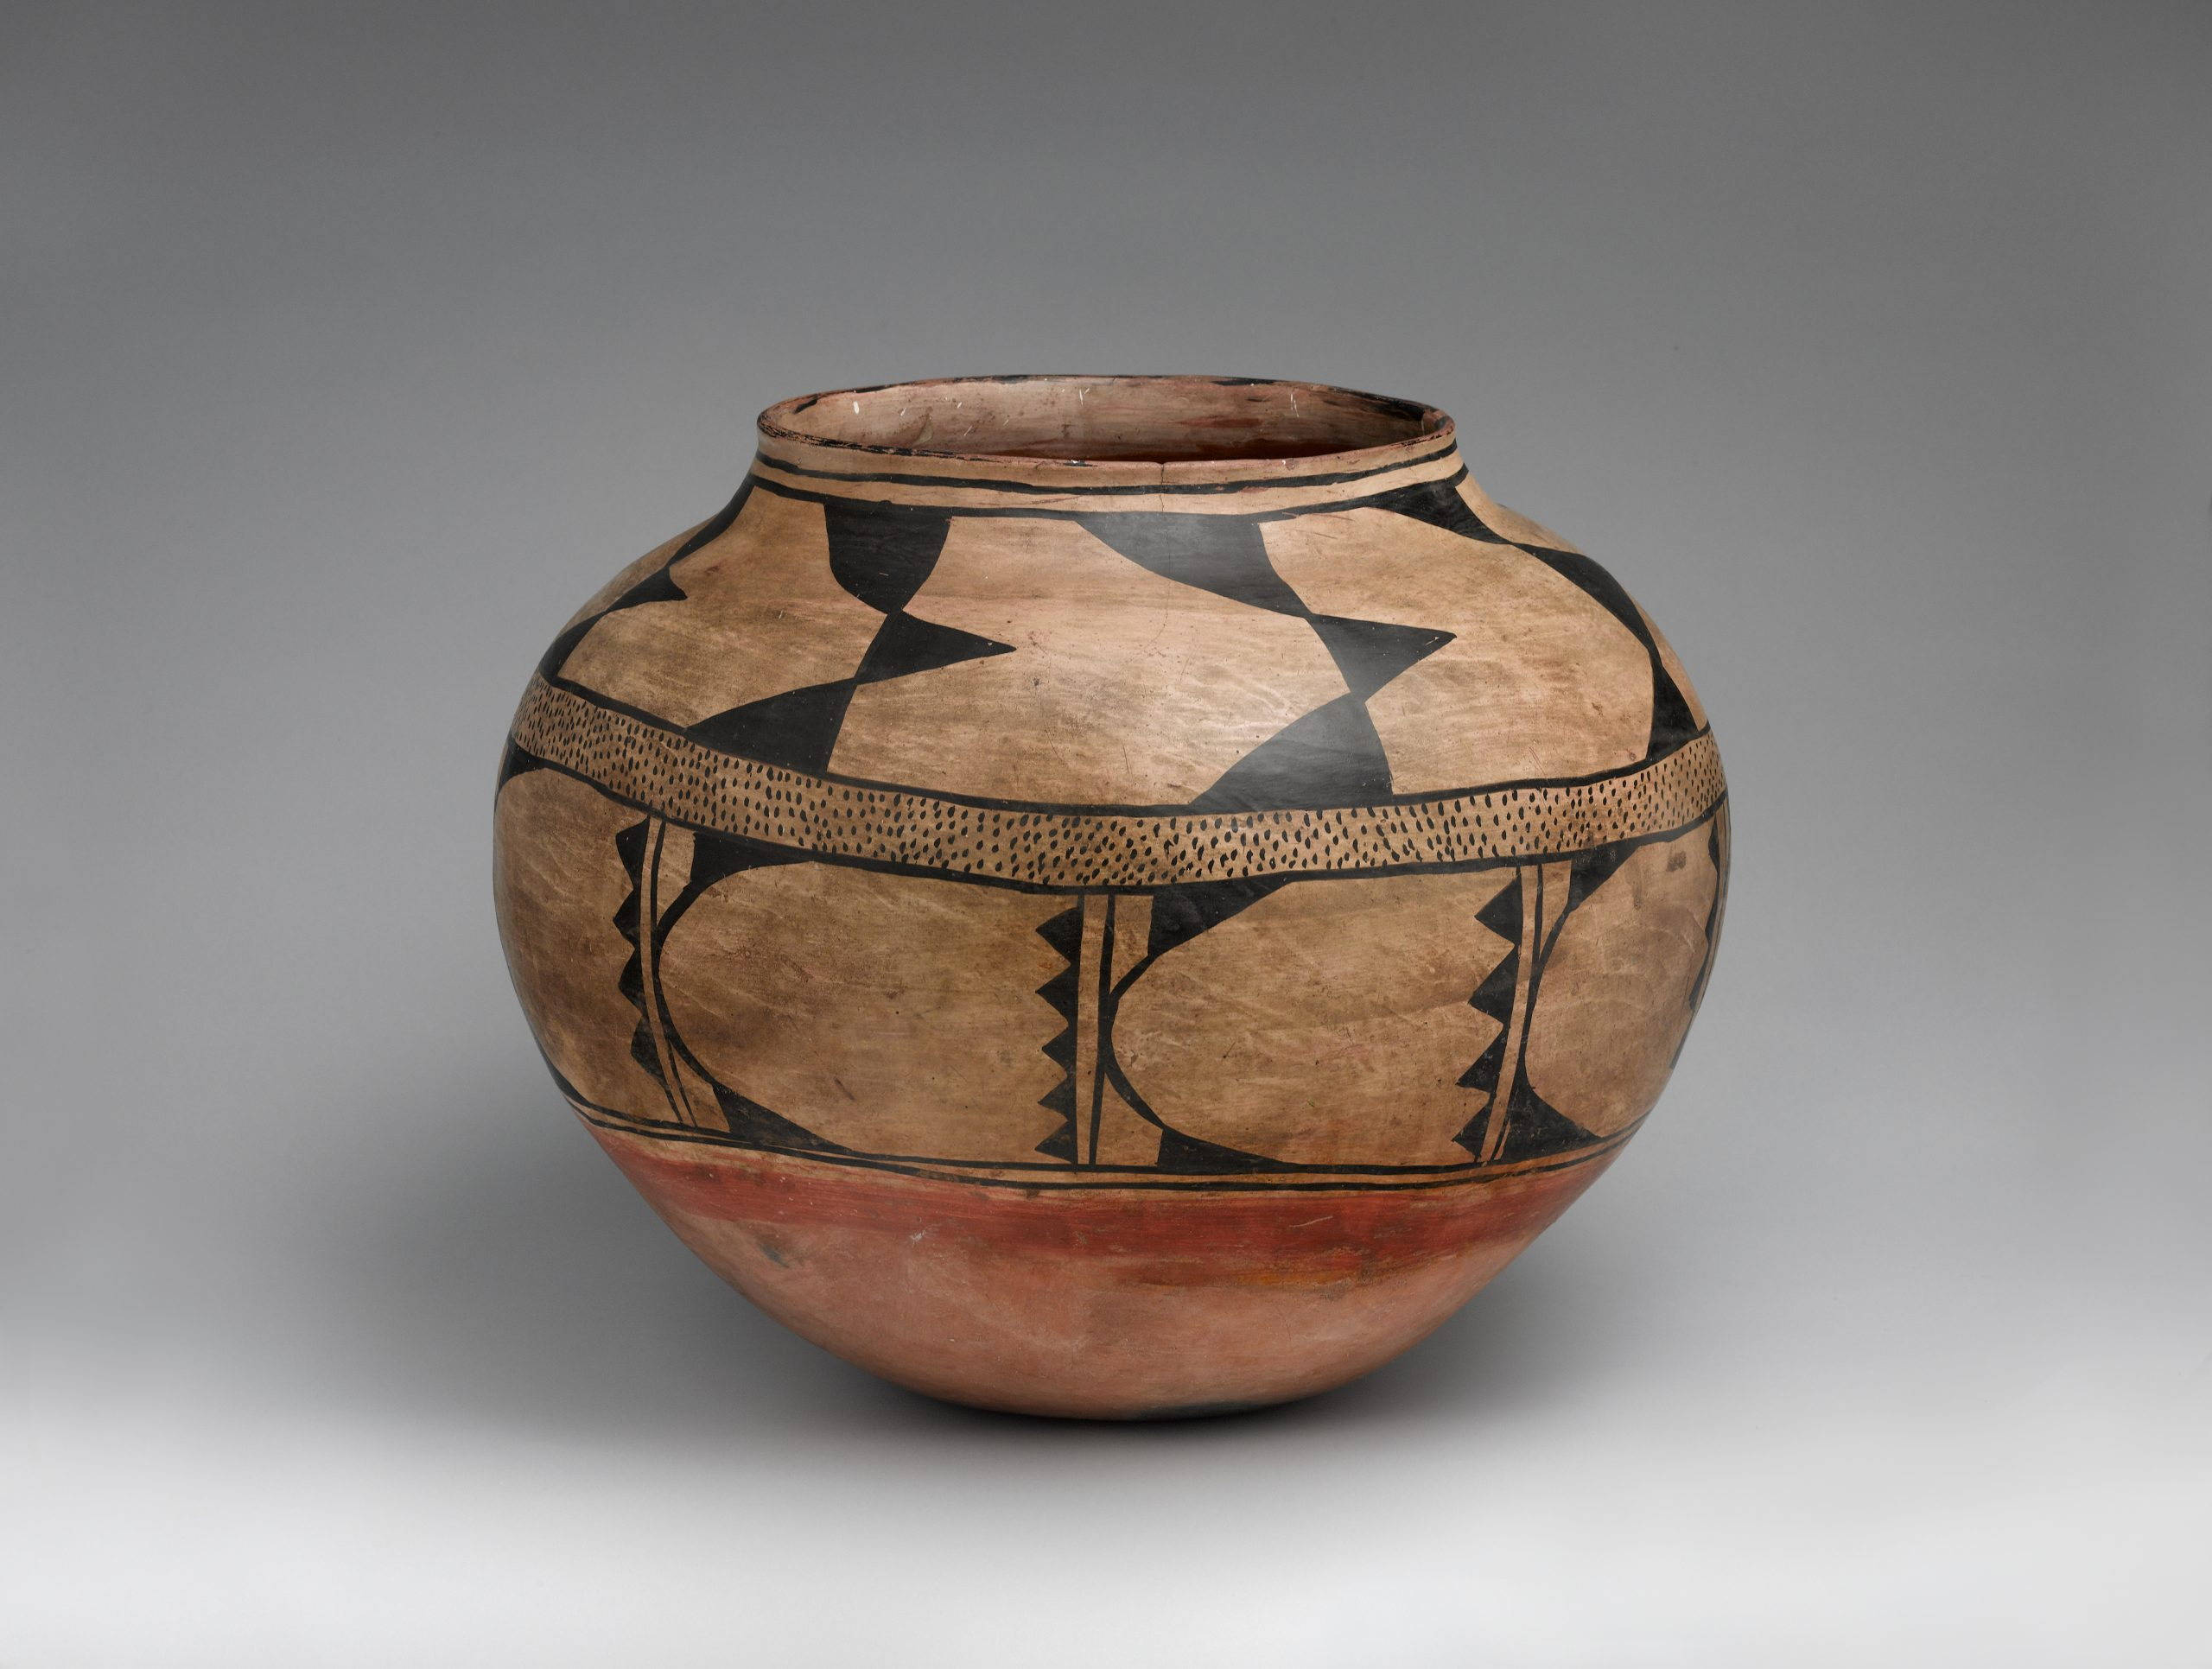 Acoma jar painted beige, rust orange, and black, with an abstract bird design.